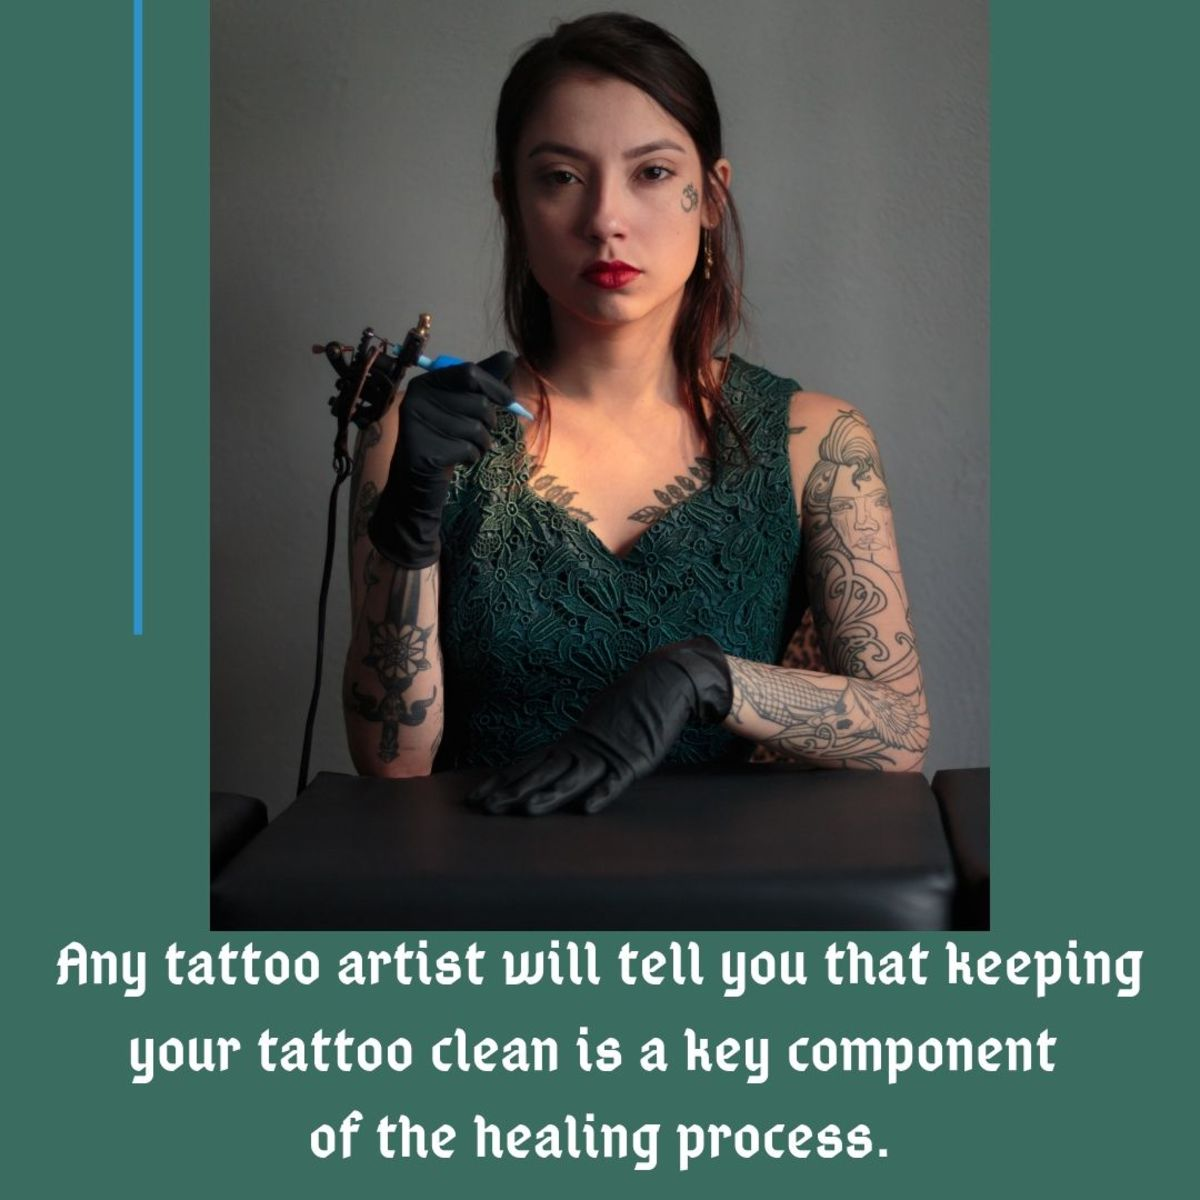 Make sure to keep your tattoo clean and moisturized during the healing process.